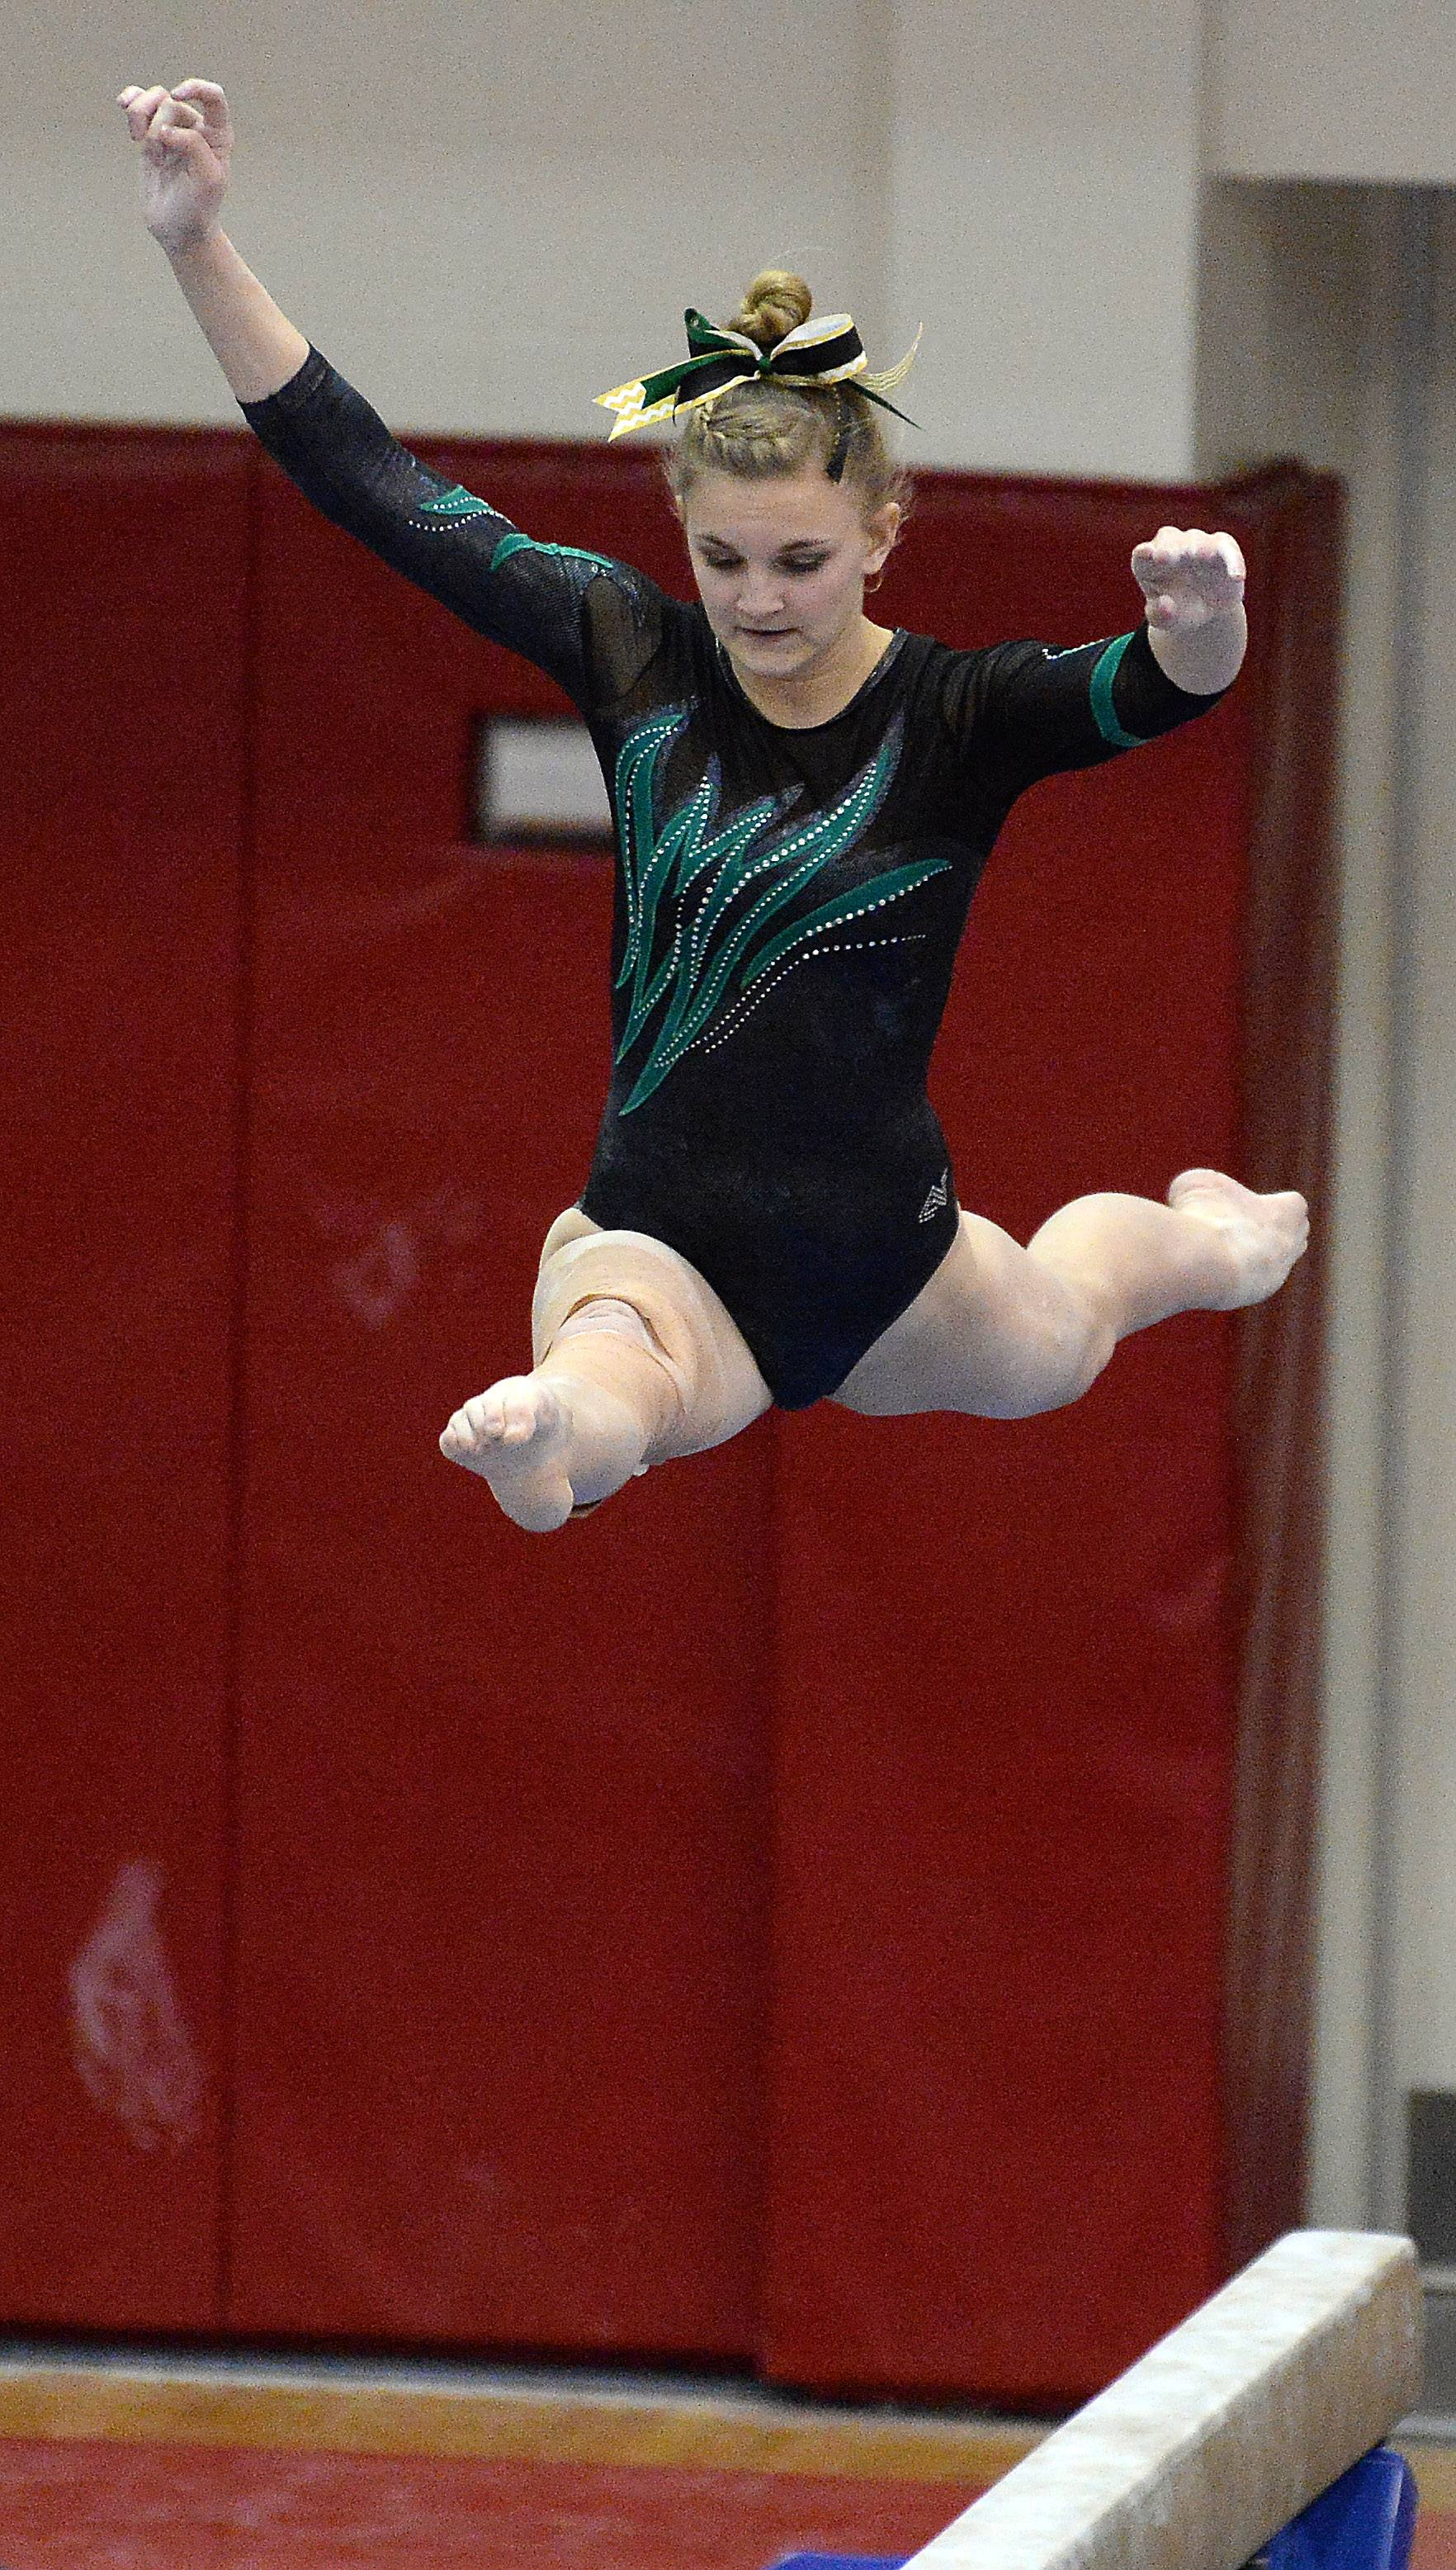 Sydney Plichta of Fremd competes on balance beam in the girls gymnastics state meet in Palatine on Friday.